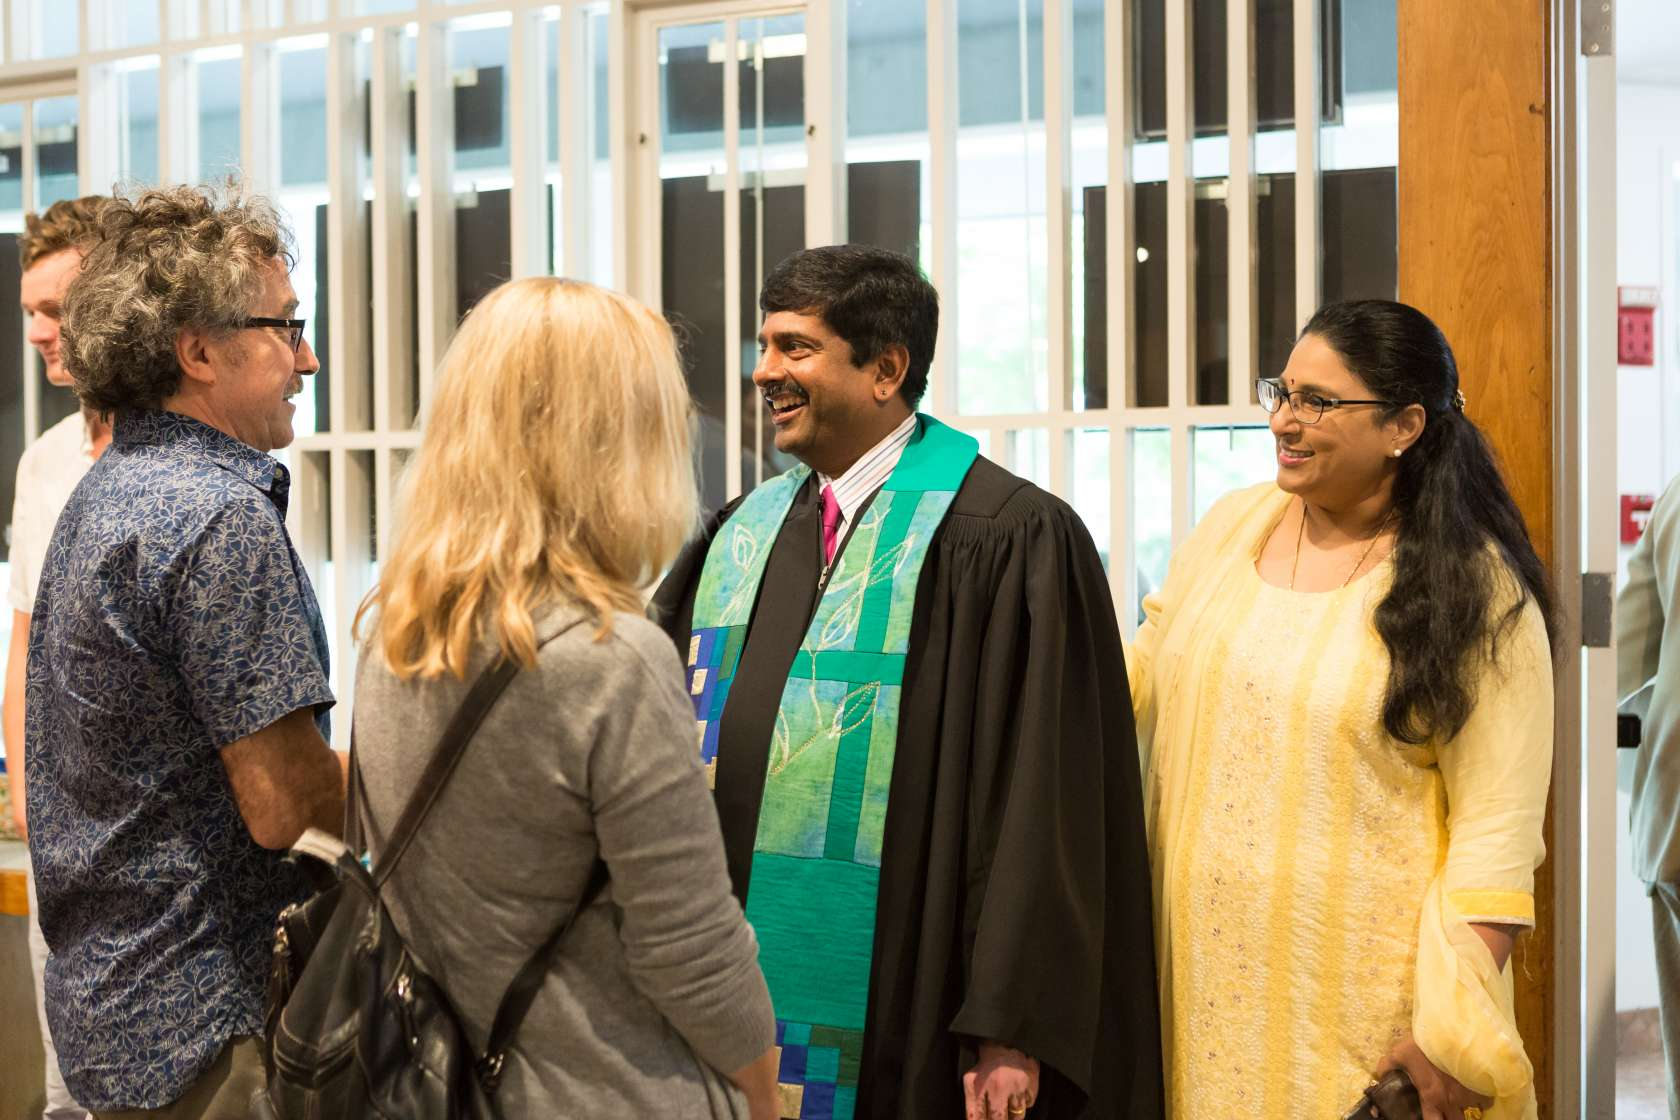 photo of Rev. Abhi and his wife in the welcoming line to greet congregants after worship on a Sunday